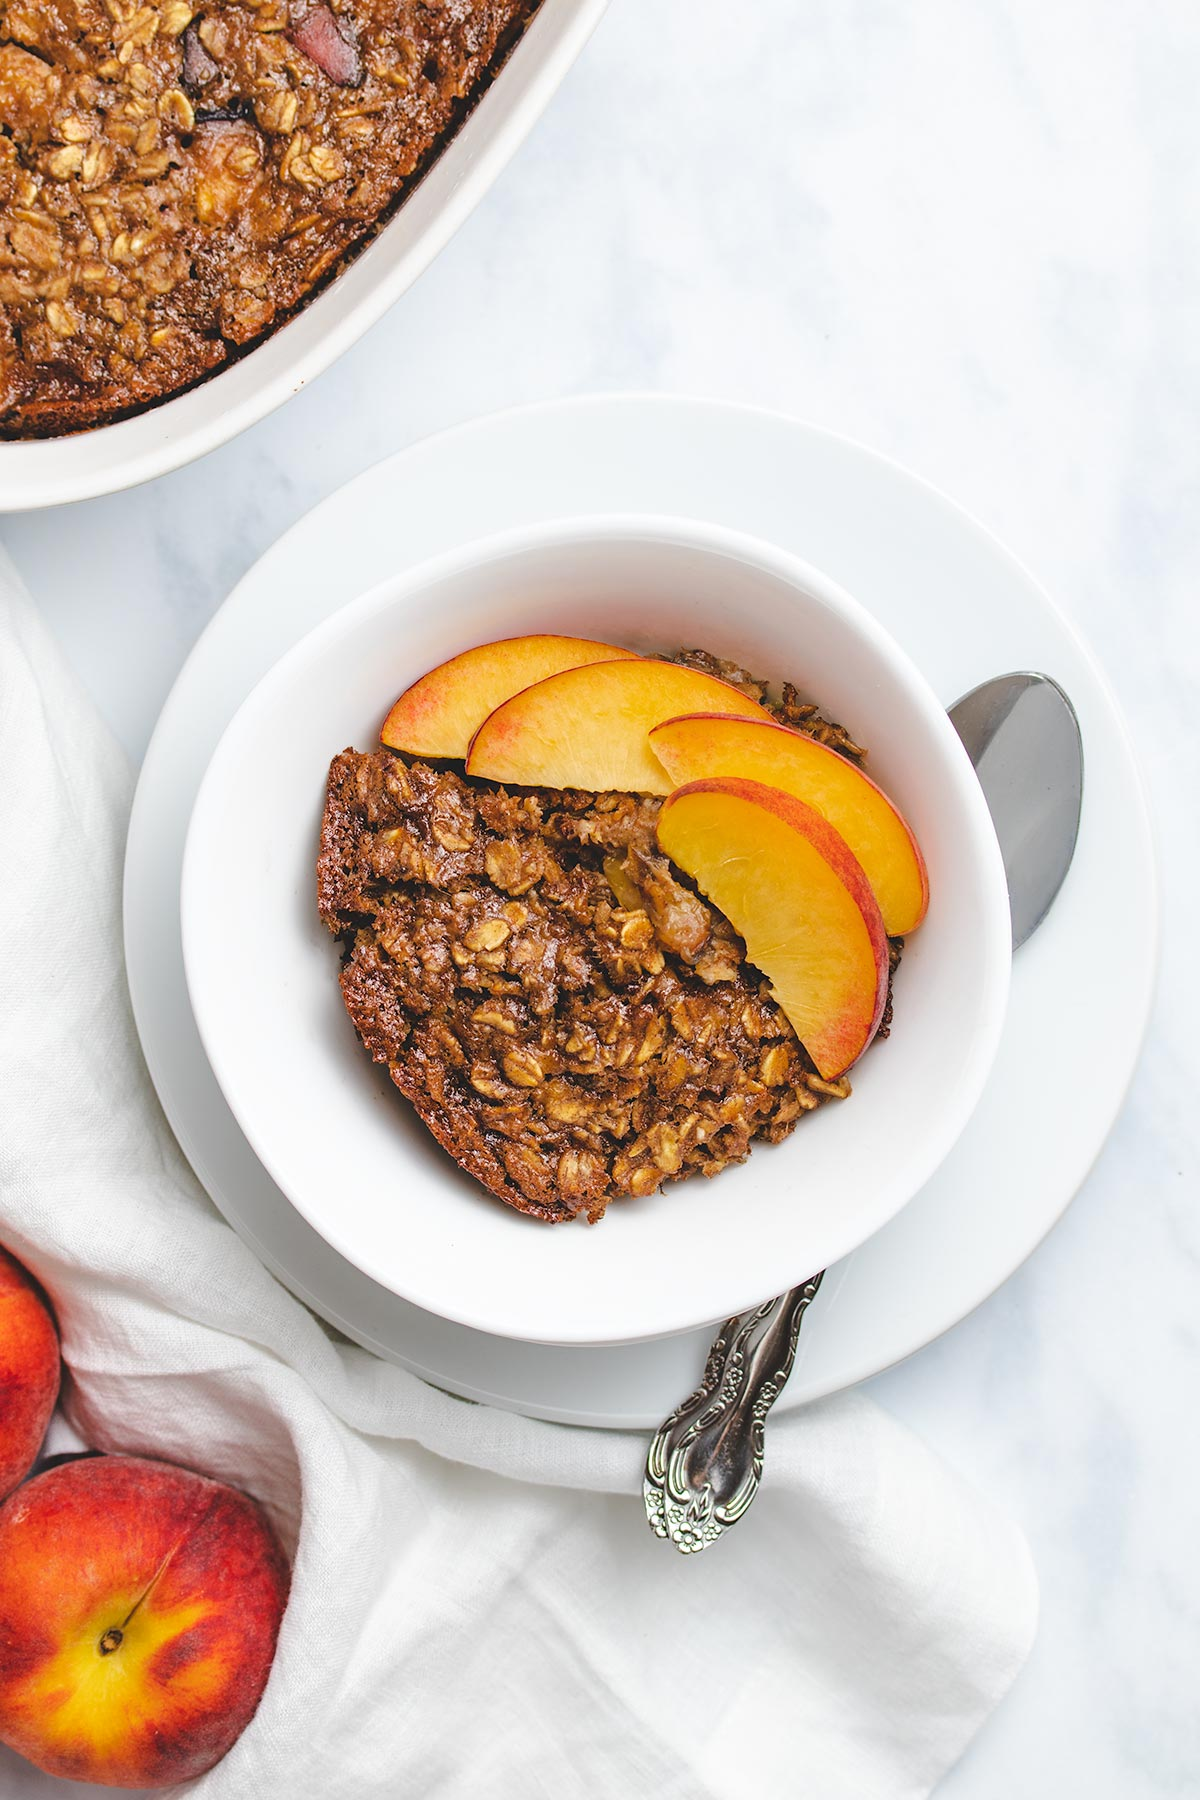 Vegan Peach Baked Oatmeal in a white bowl garnished with peach slices